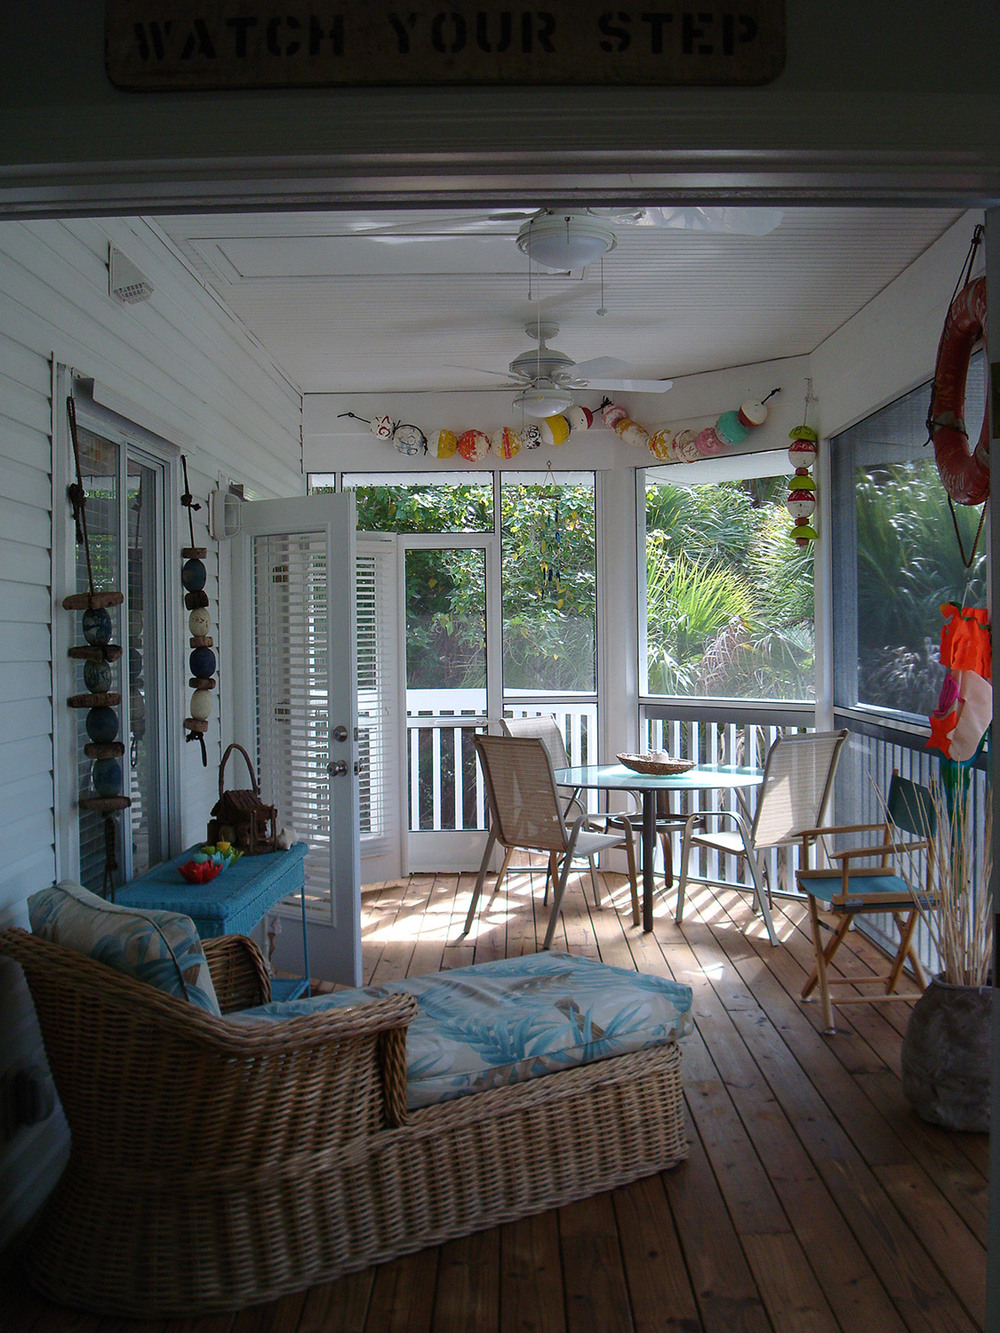 island-beach-house-renovation-screened-in-porch-041.jpg